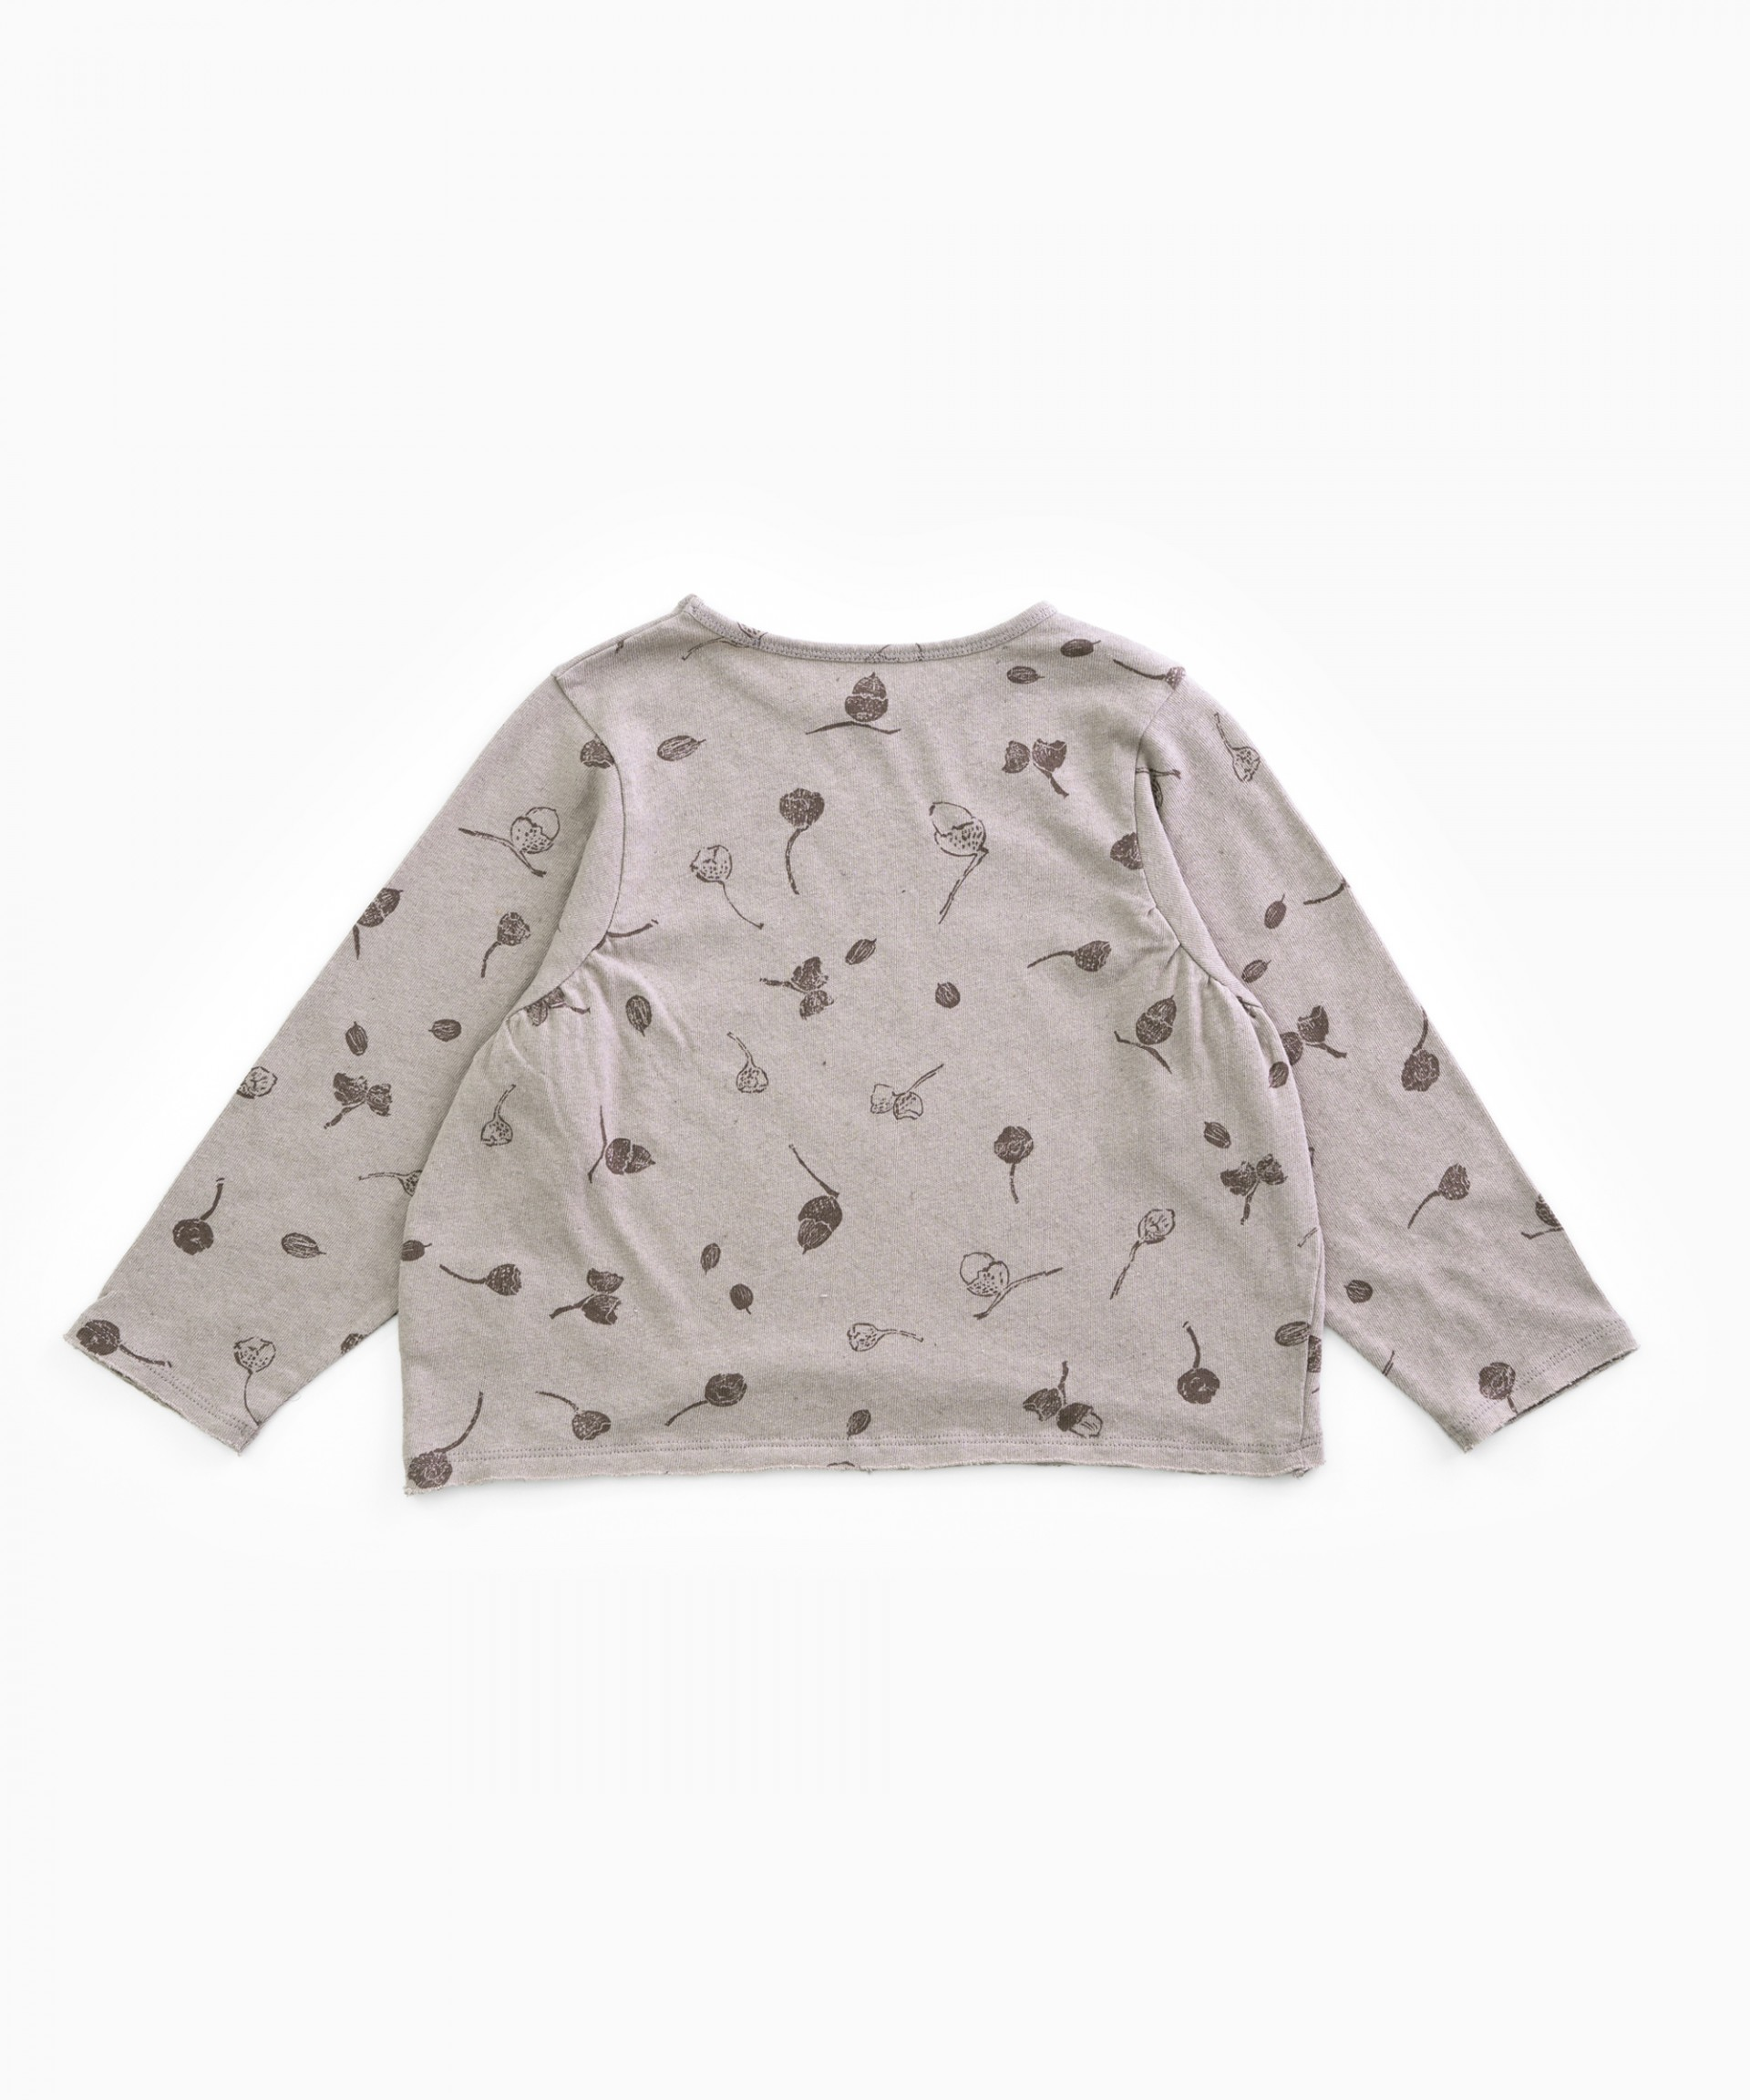 T-shirt with acorns | Woodwork